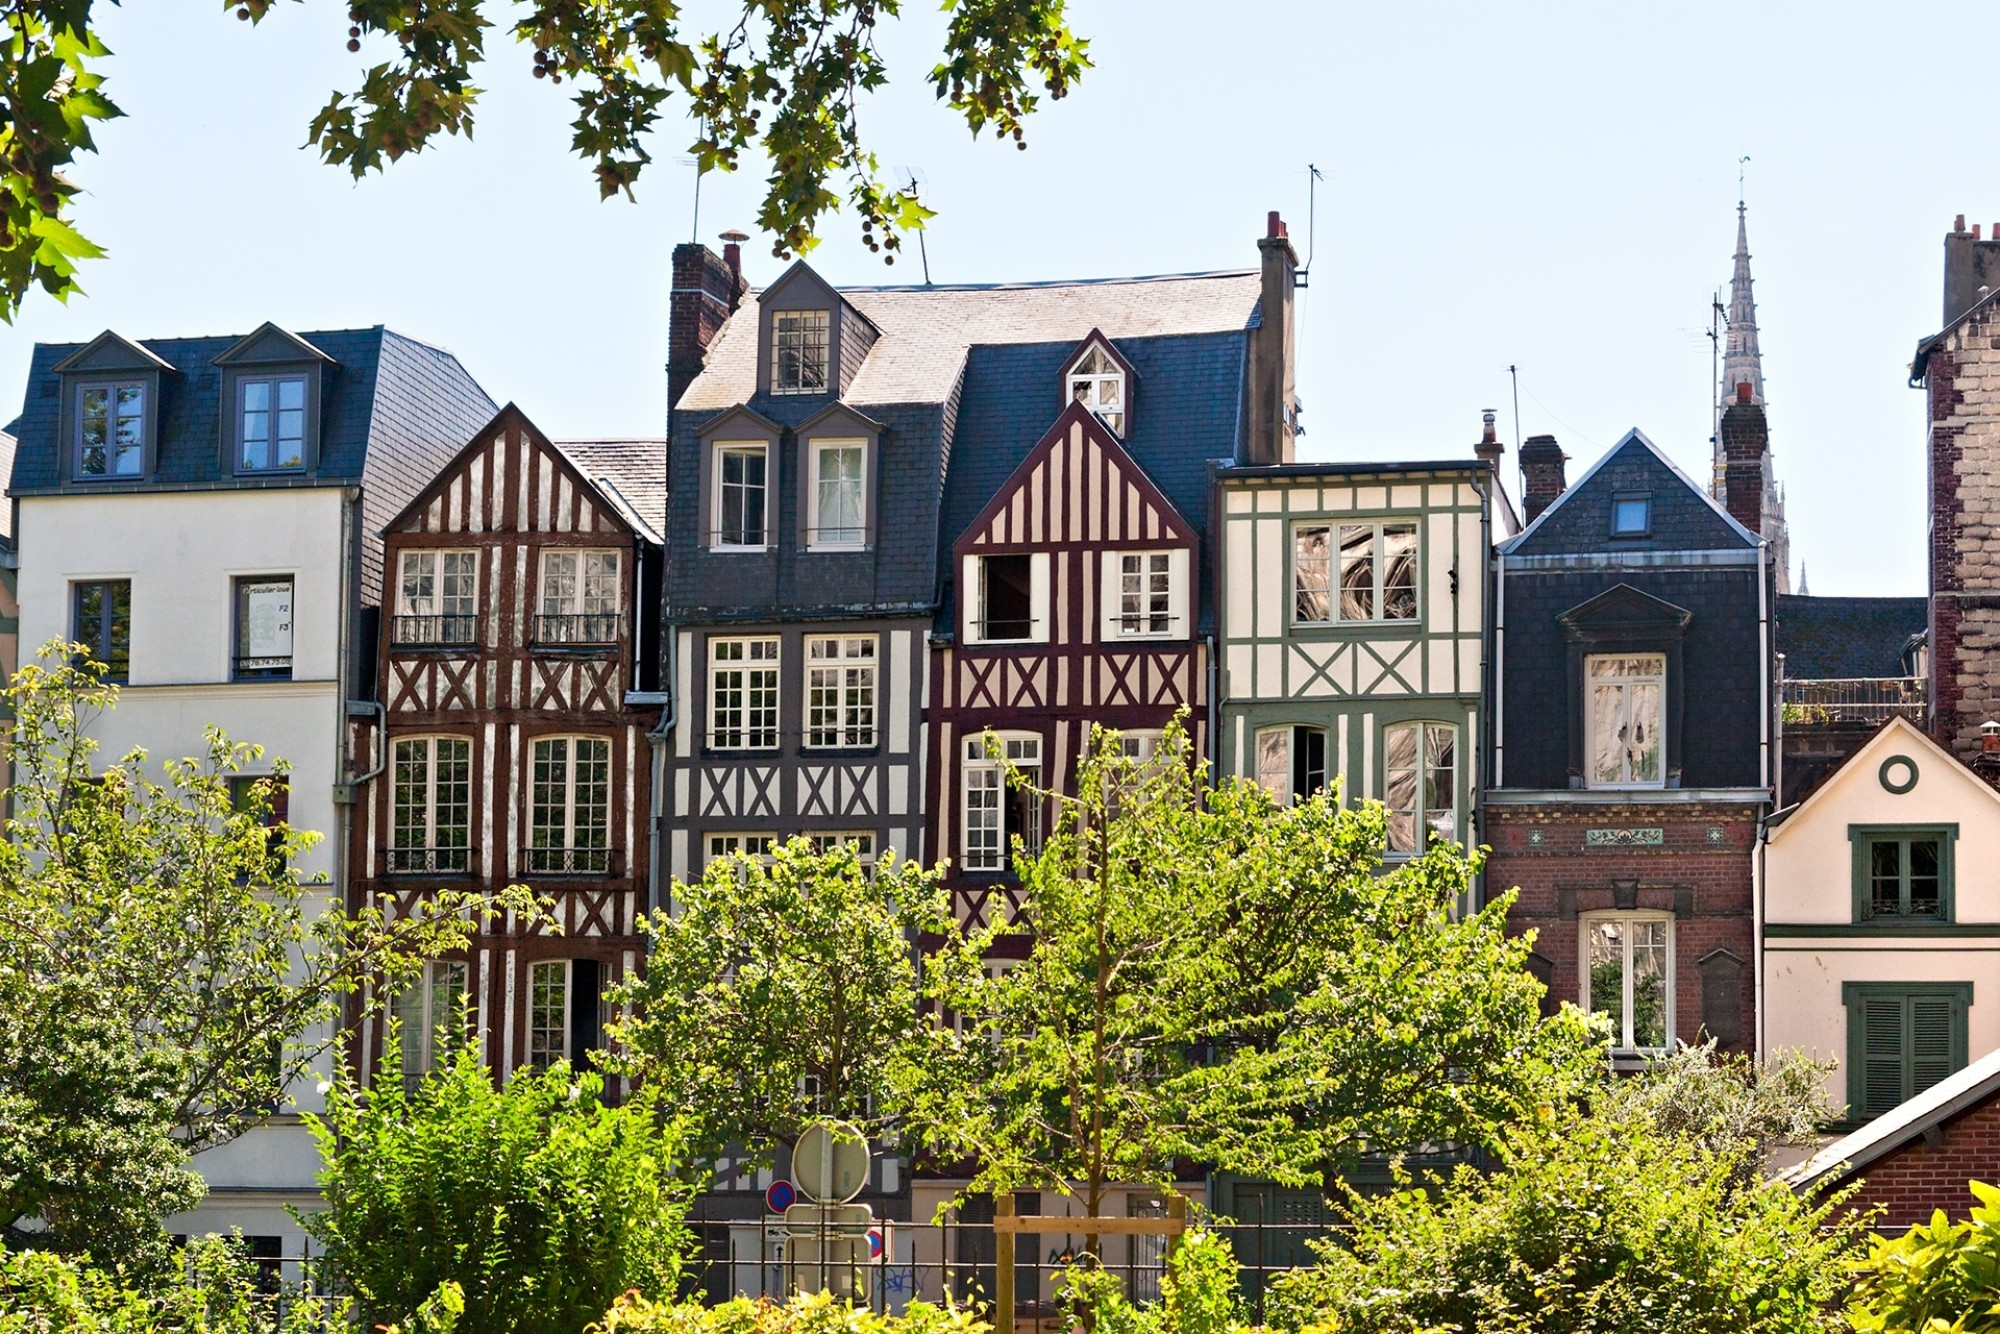 A-Row-of-Half-Timbered-Houses-in-Rouen-Normandy-France